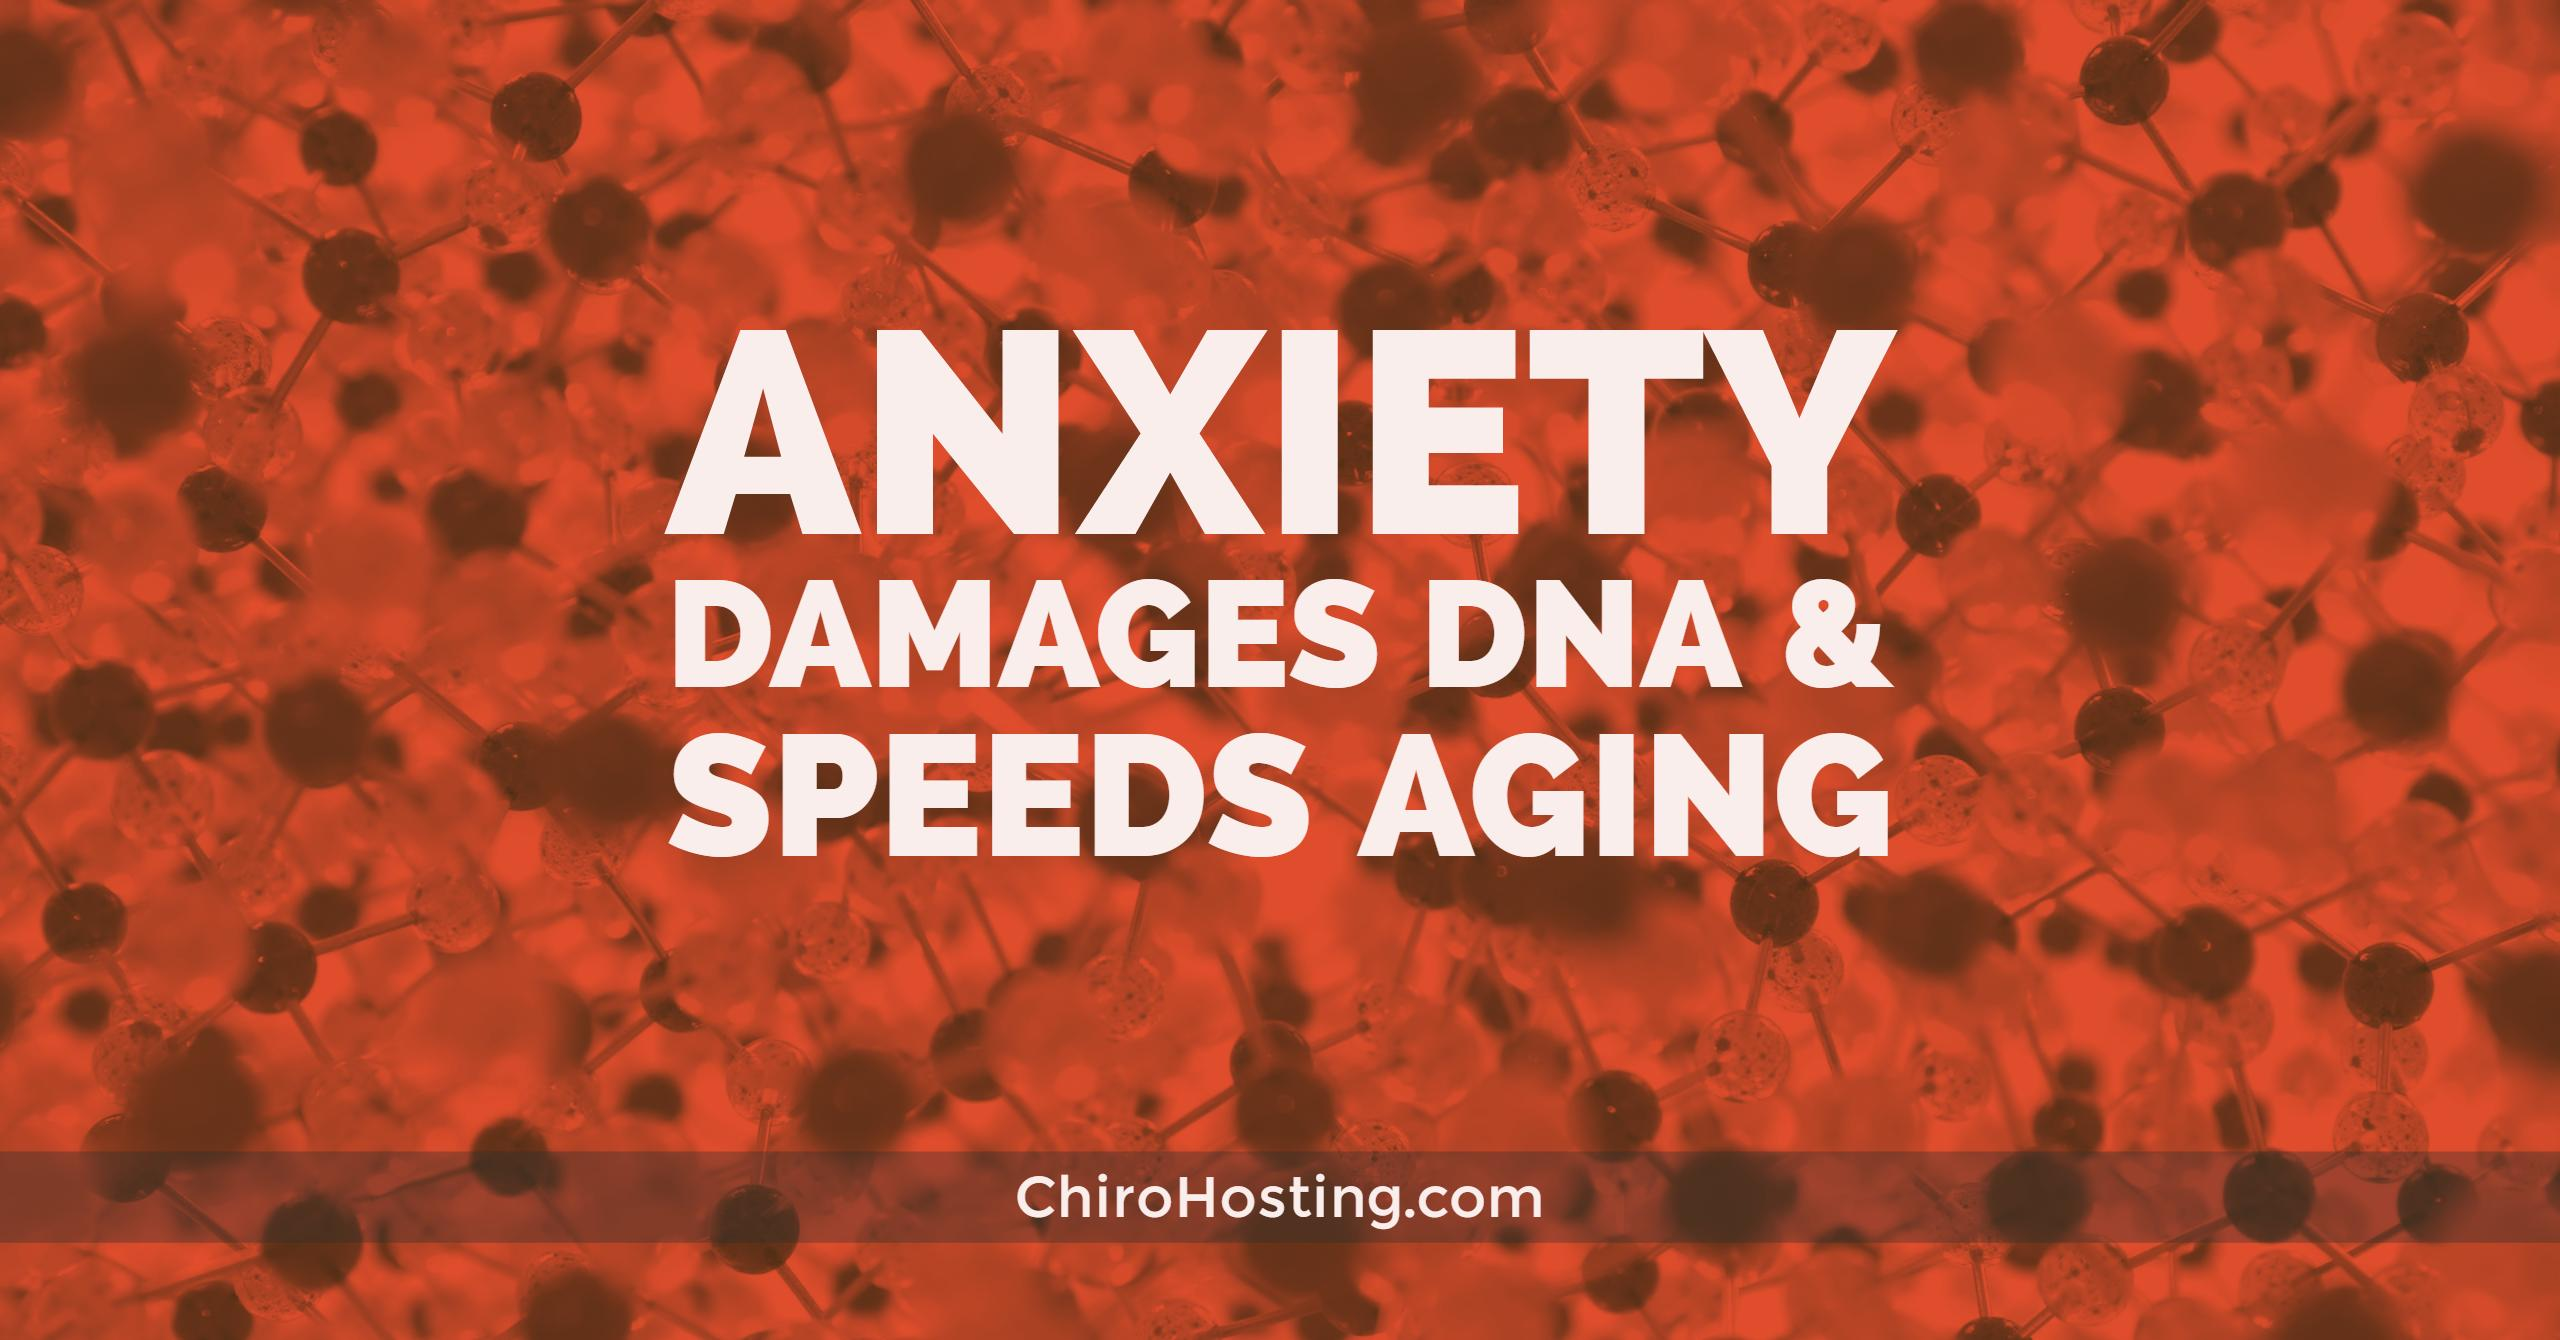 Worrying Damages DNA and Speeds Aging